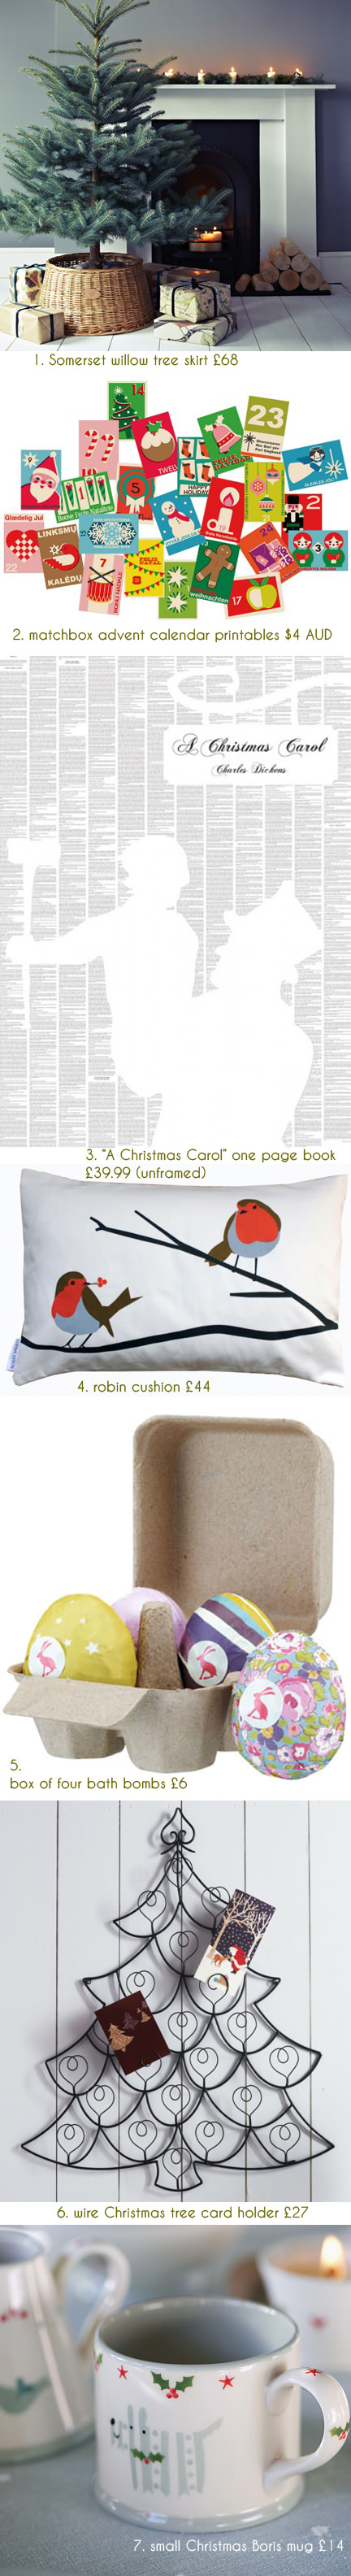 selection of festive Christmas items for sale by various independent retailers &amp; makers